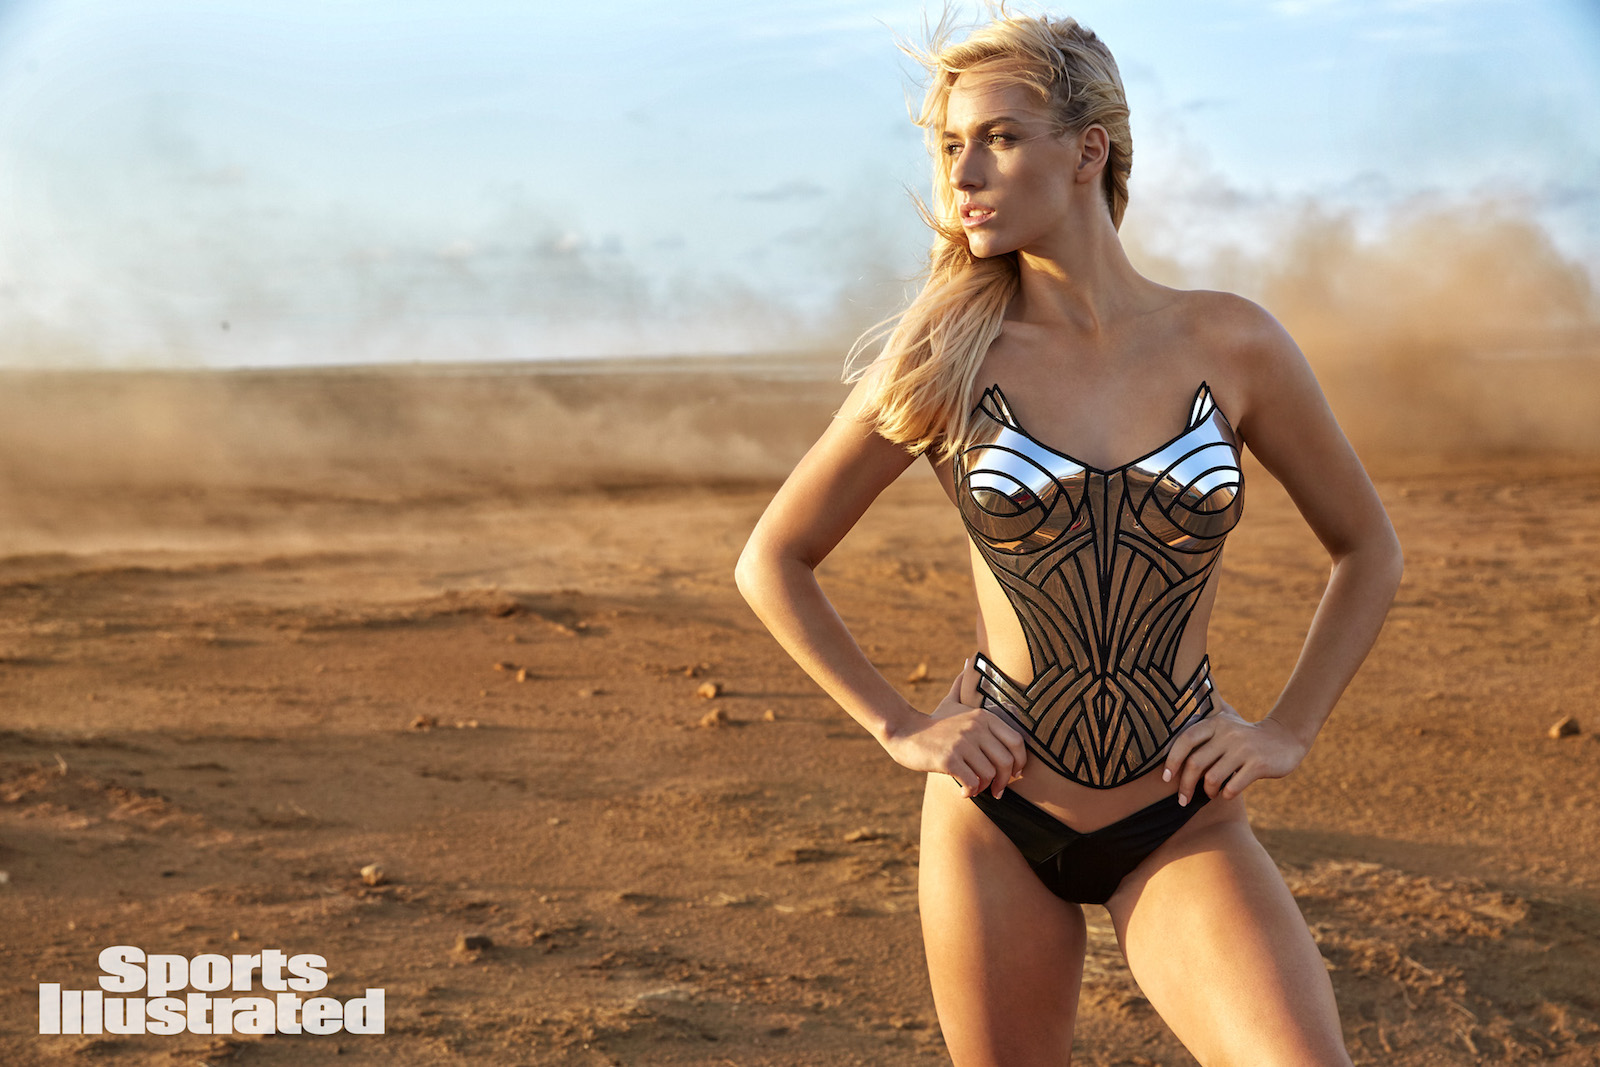 Pro golfer and Instagram star Paige Spiranac poses for Sports Illustrated Swimsuit Issue 2018